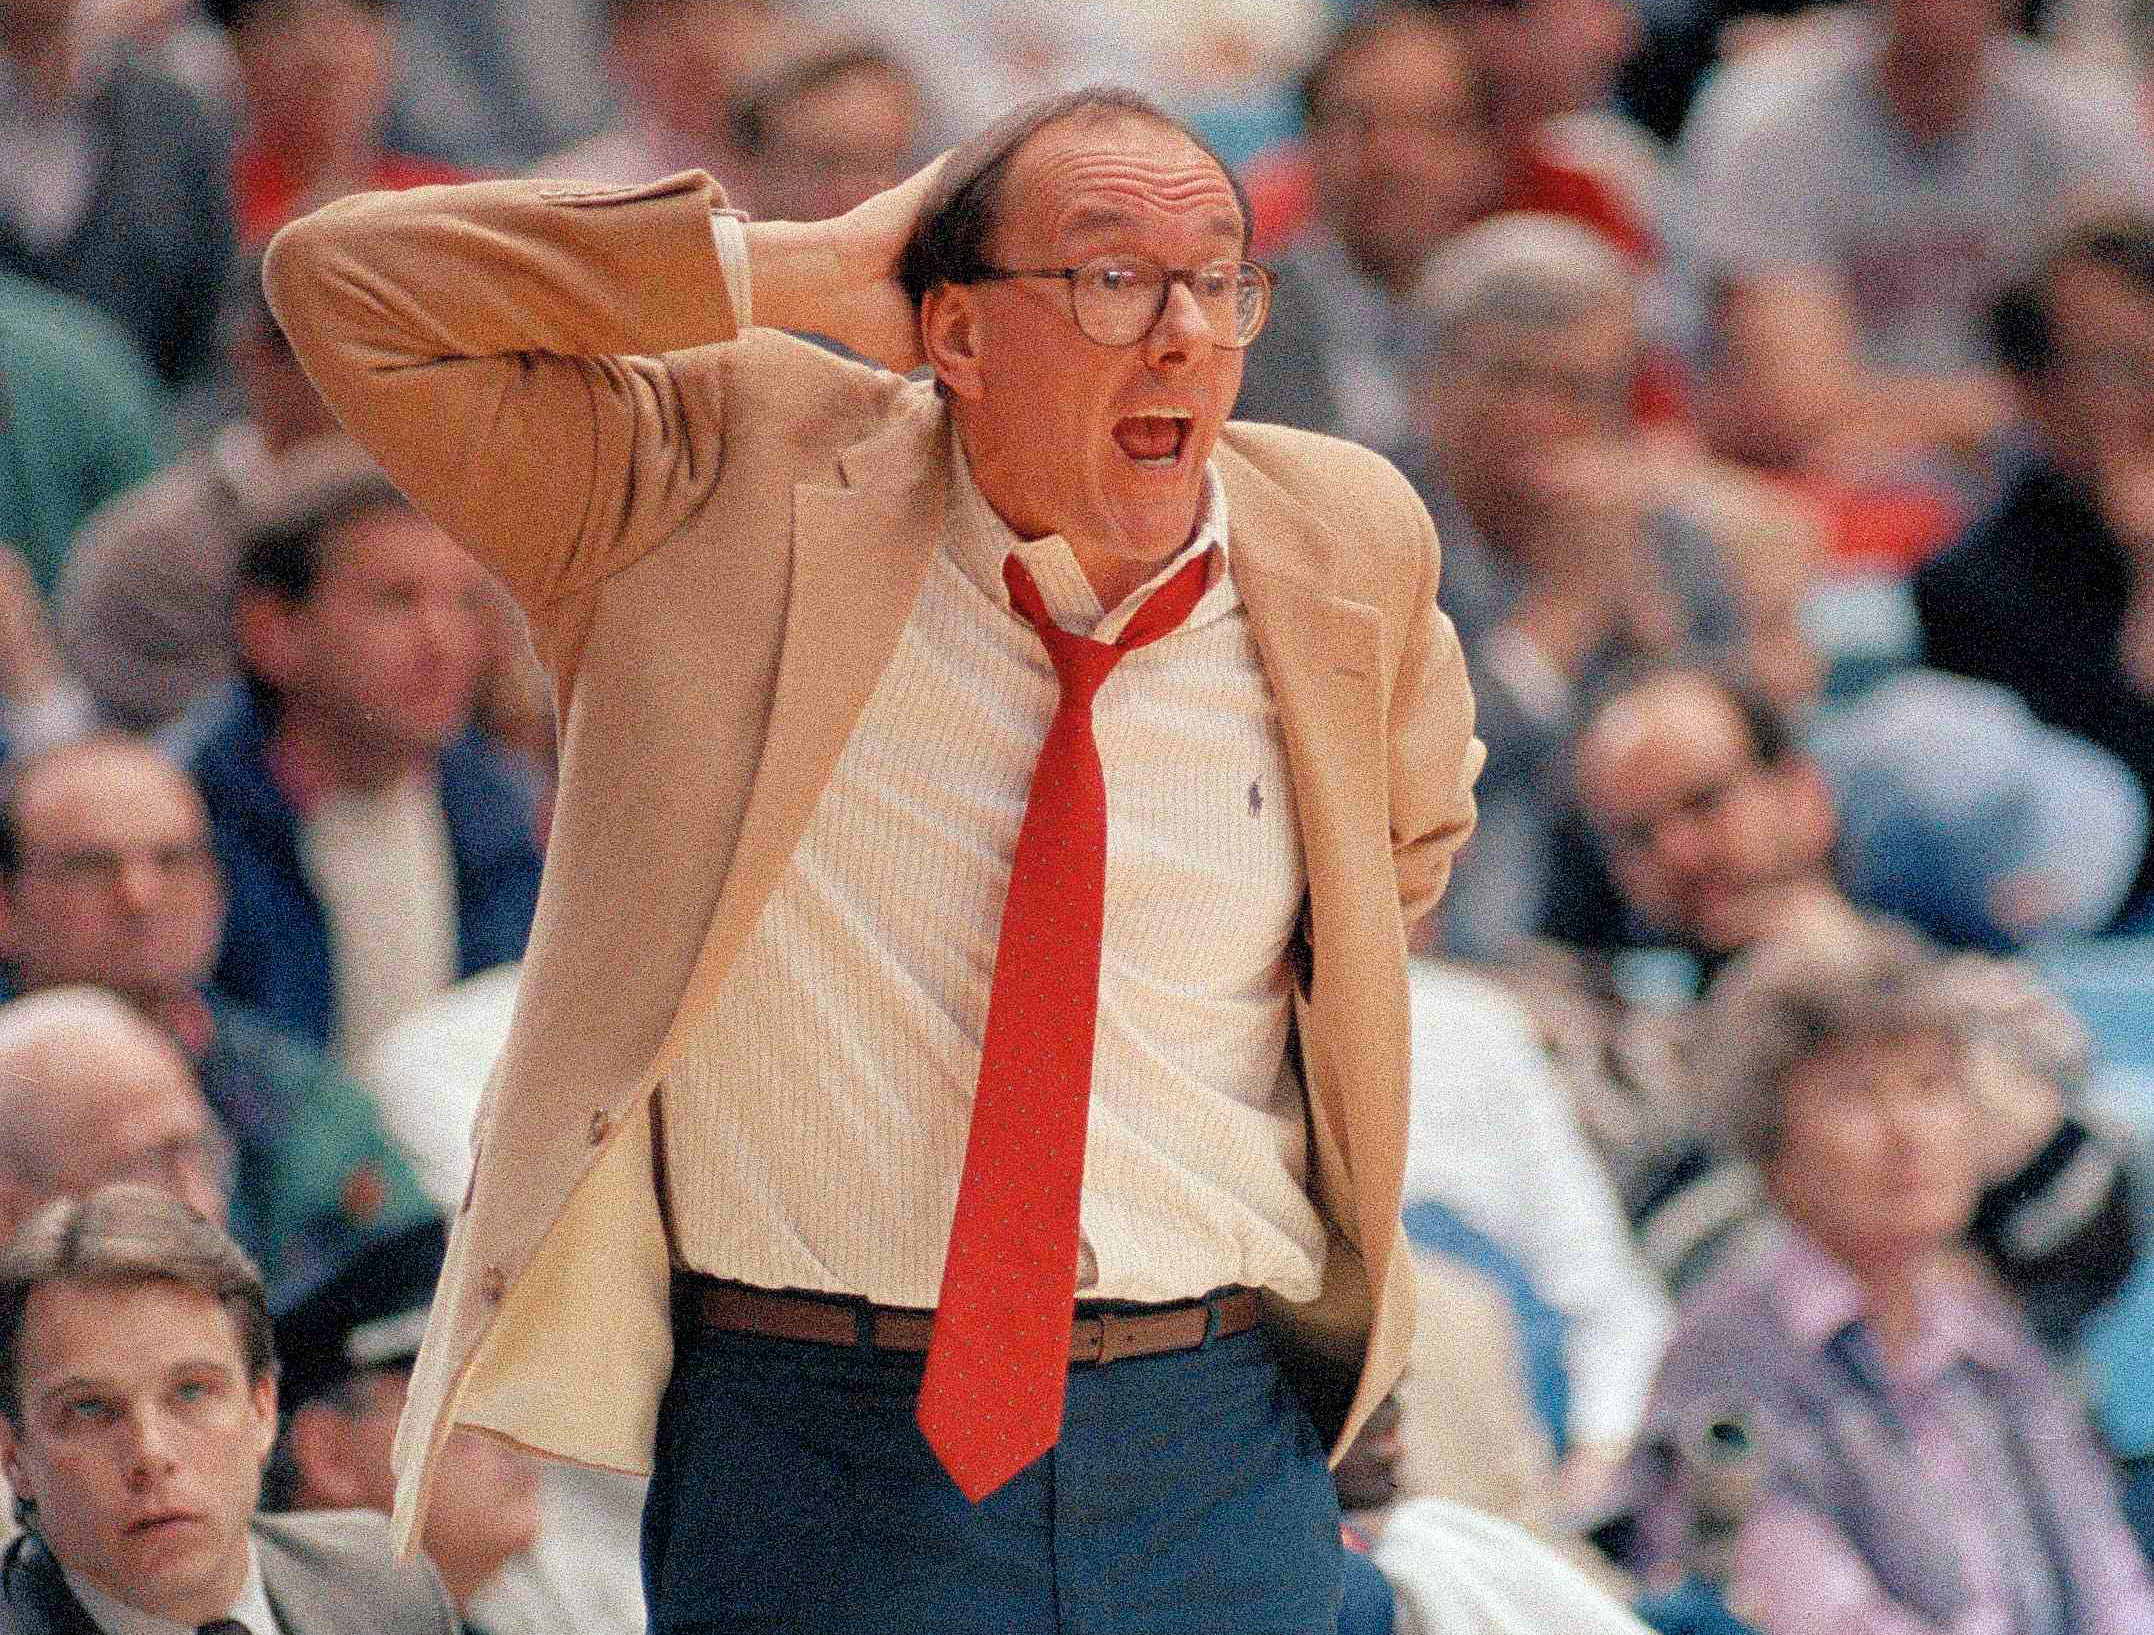 1988: Syracuse coach Jim Boeheim yells to the Orangemen during their second round NCAA East Regional game against Rhode Island in Chapel Hill, N.C., March 19, 1988. The Rams upset the Orangemen 97-94. (AP Photo/Scott Stewart)